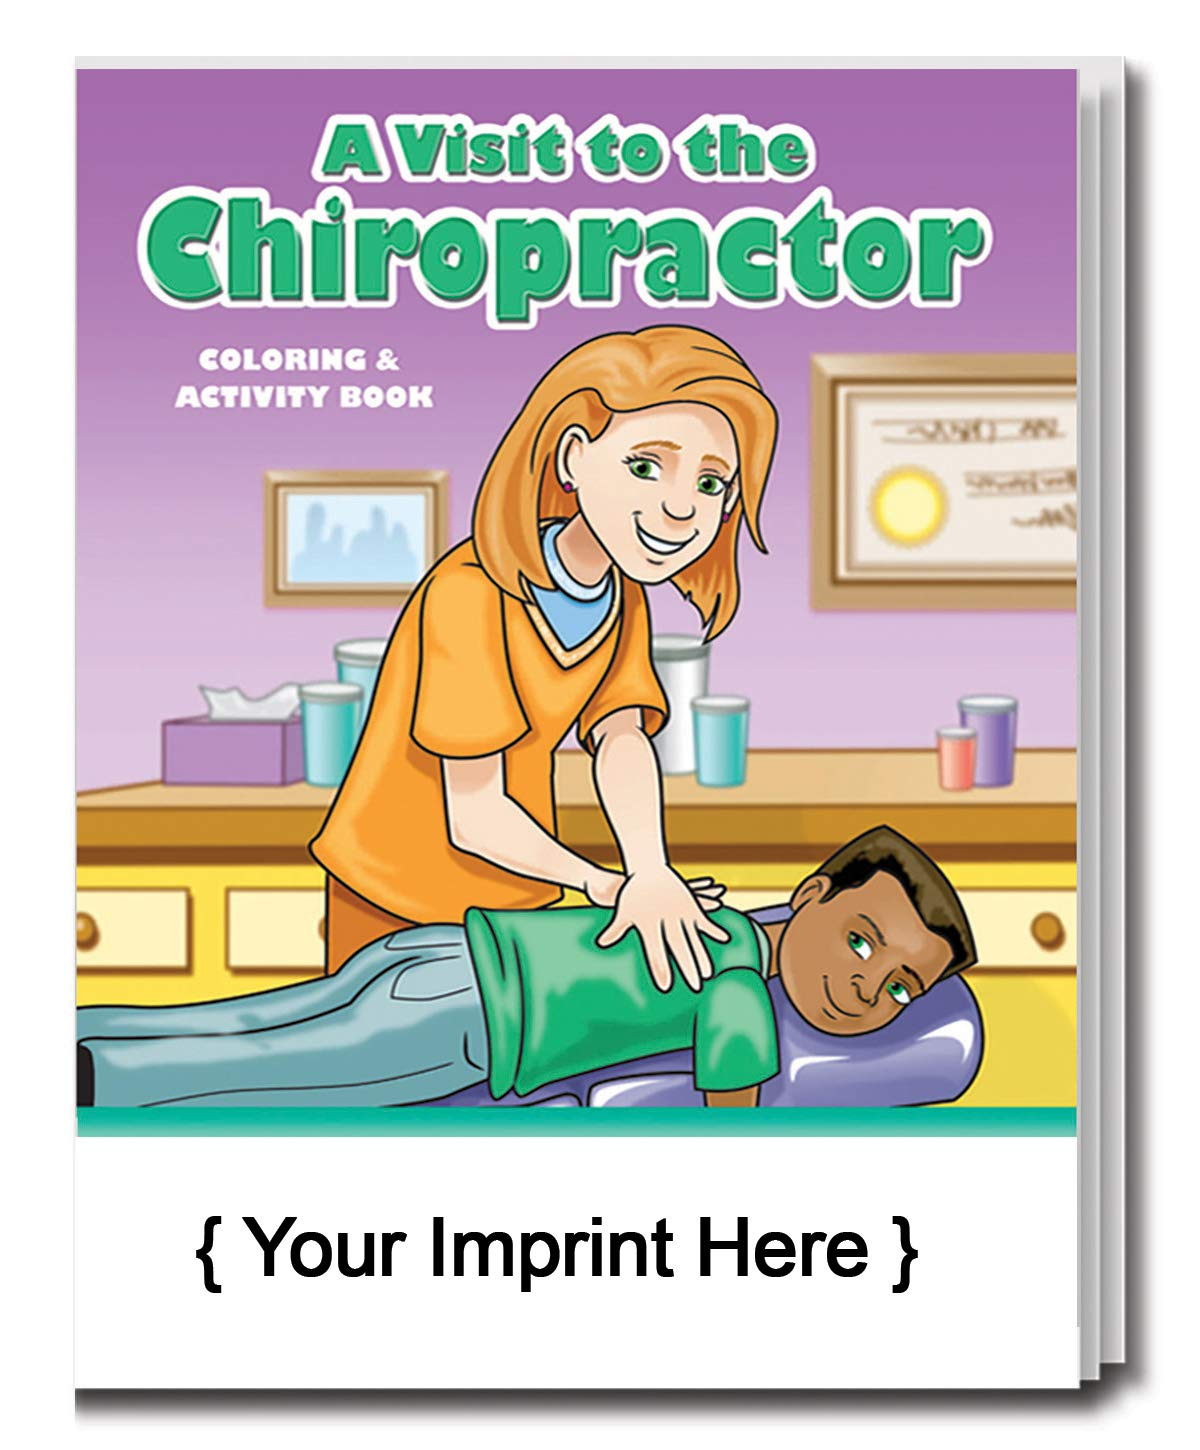 ZOCO 250 Pack / Add Your Imprint - A Visit to The Chiropractor Kid's Coloring & Activity Book in Bulk - Chiropractic Kids Toys - Chiropractic Books for Kids - Promotional Items